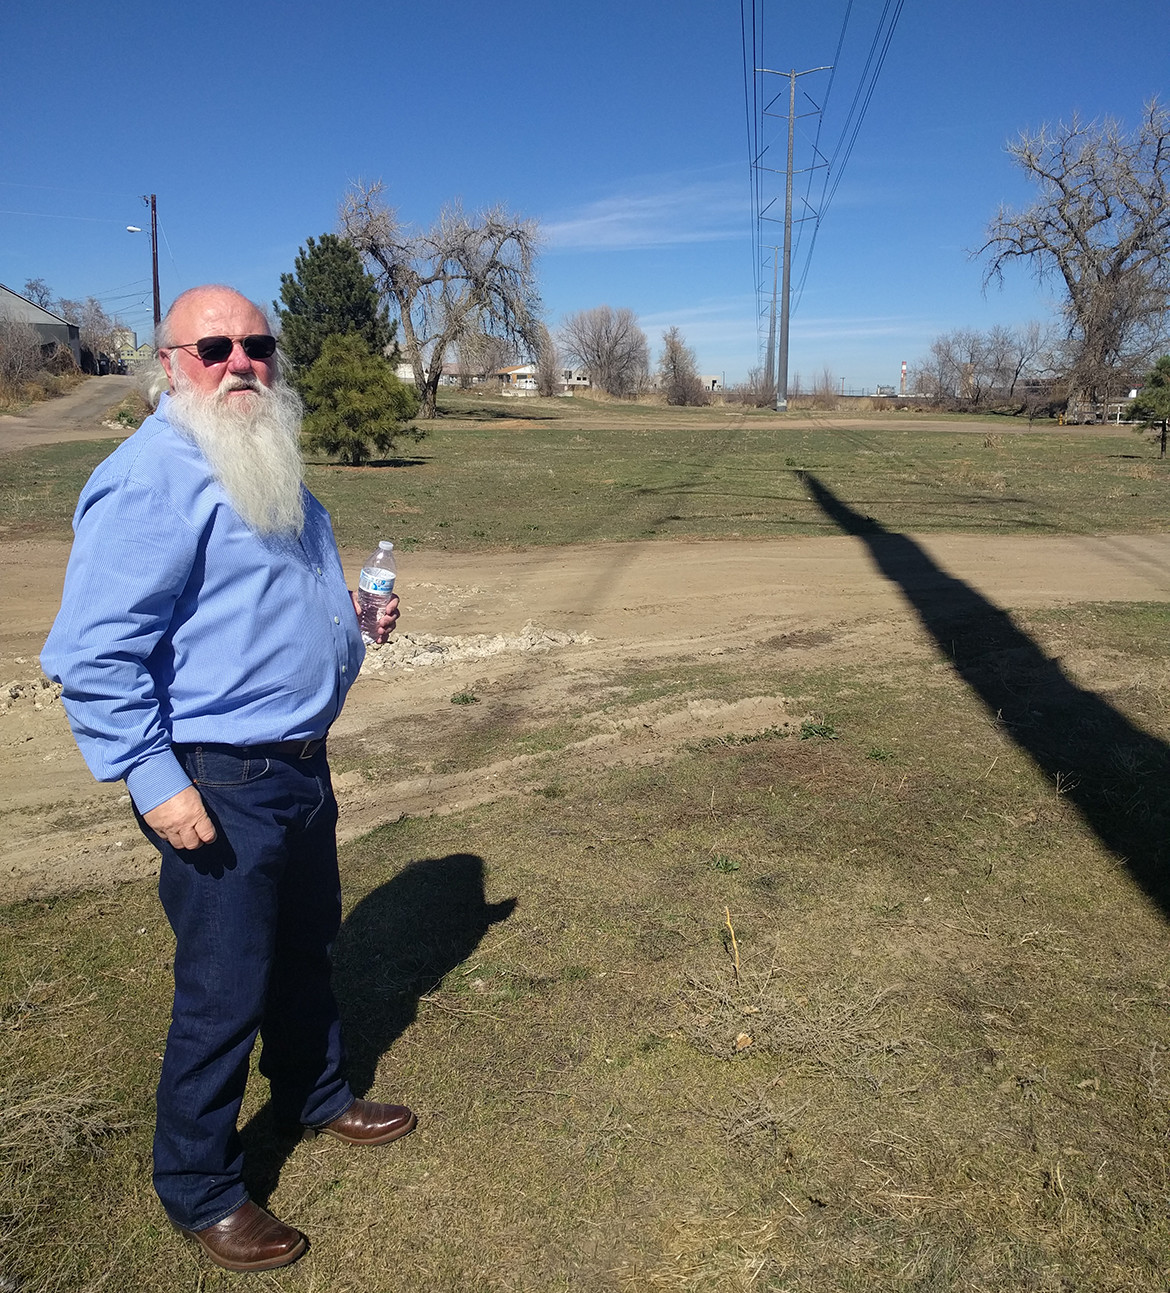 Dave standing on future site of Platte Farm Open Space in Denver's Globeville neighborhood